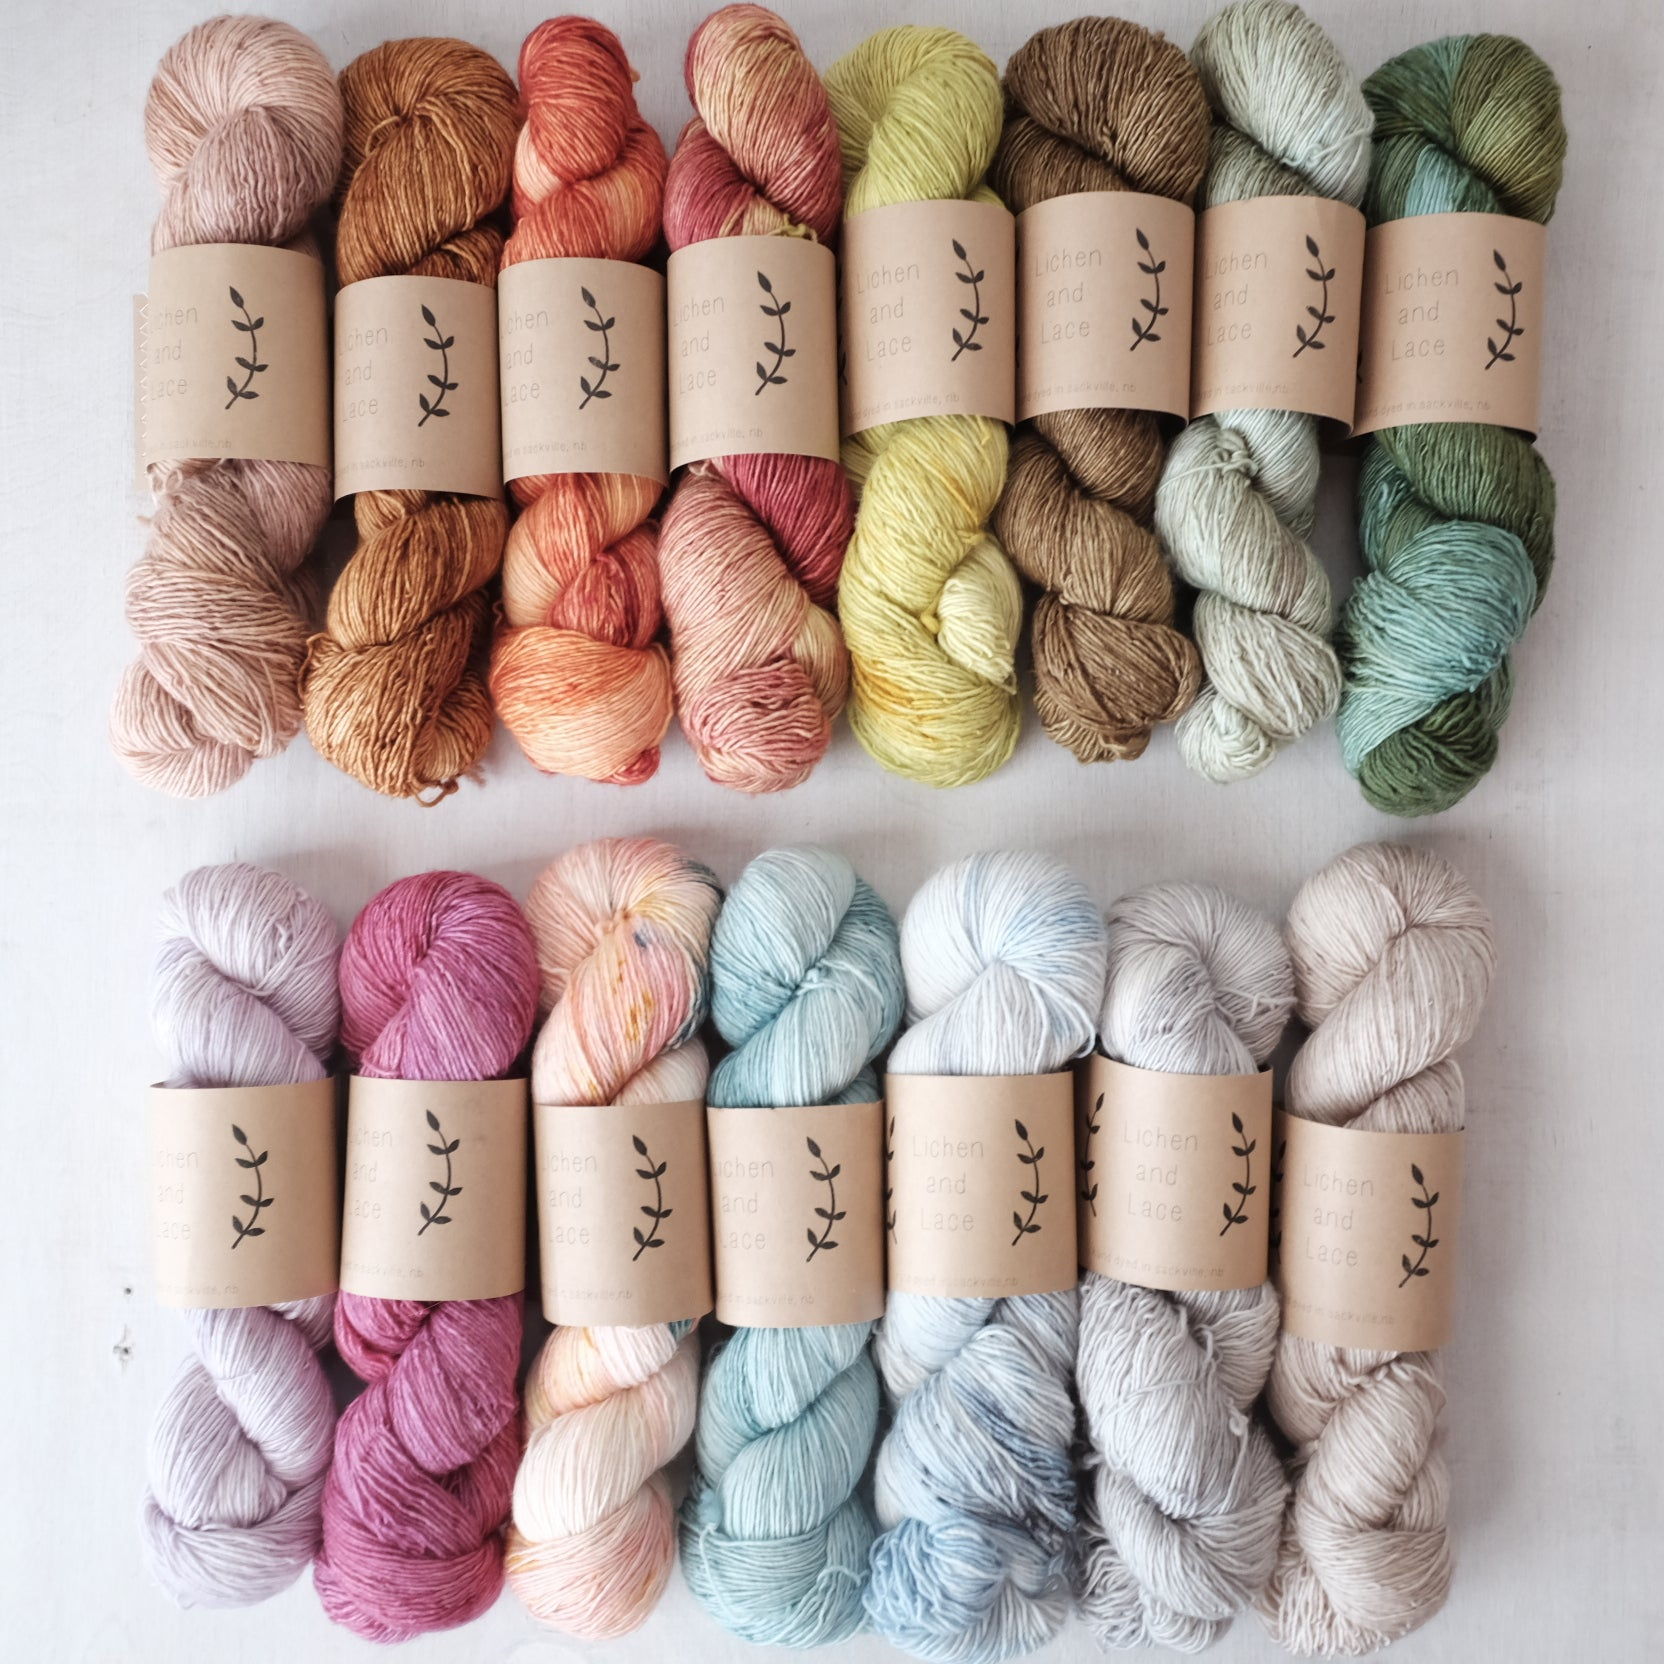 Lichen and Lace superwash fingering - SALE - 25% off